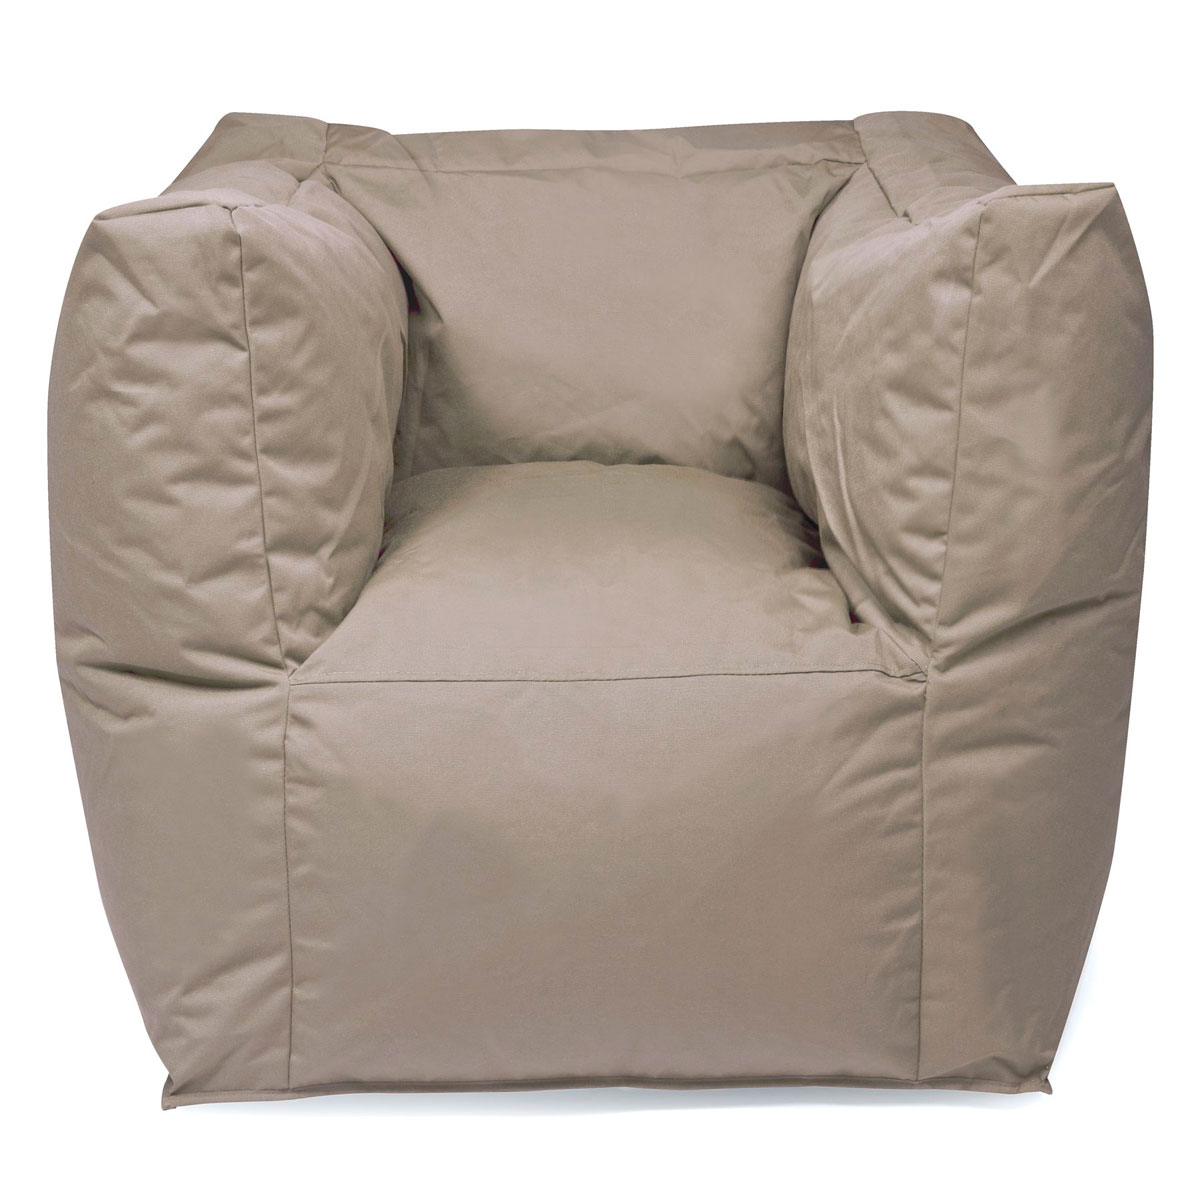 OUTBAG Valley Outdoor-Sessel Sitzsack plus mud (taupe)